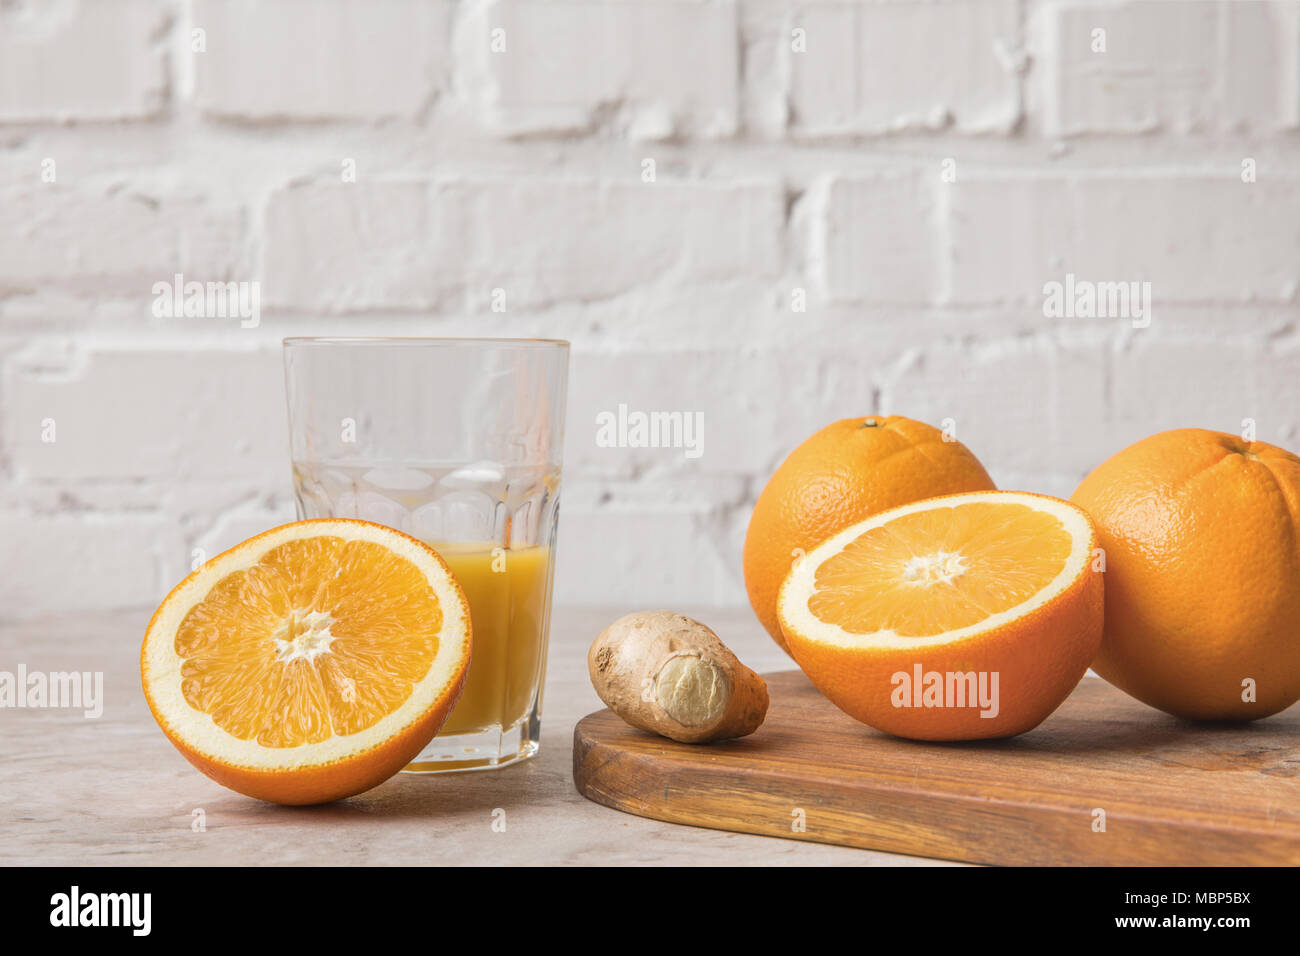 homemade orange juice and oranges with ginger on marble table - Stock Image